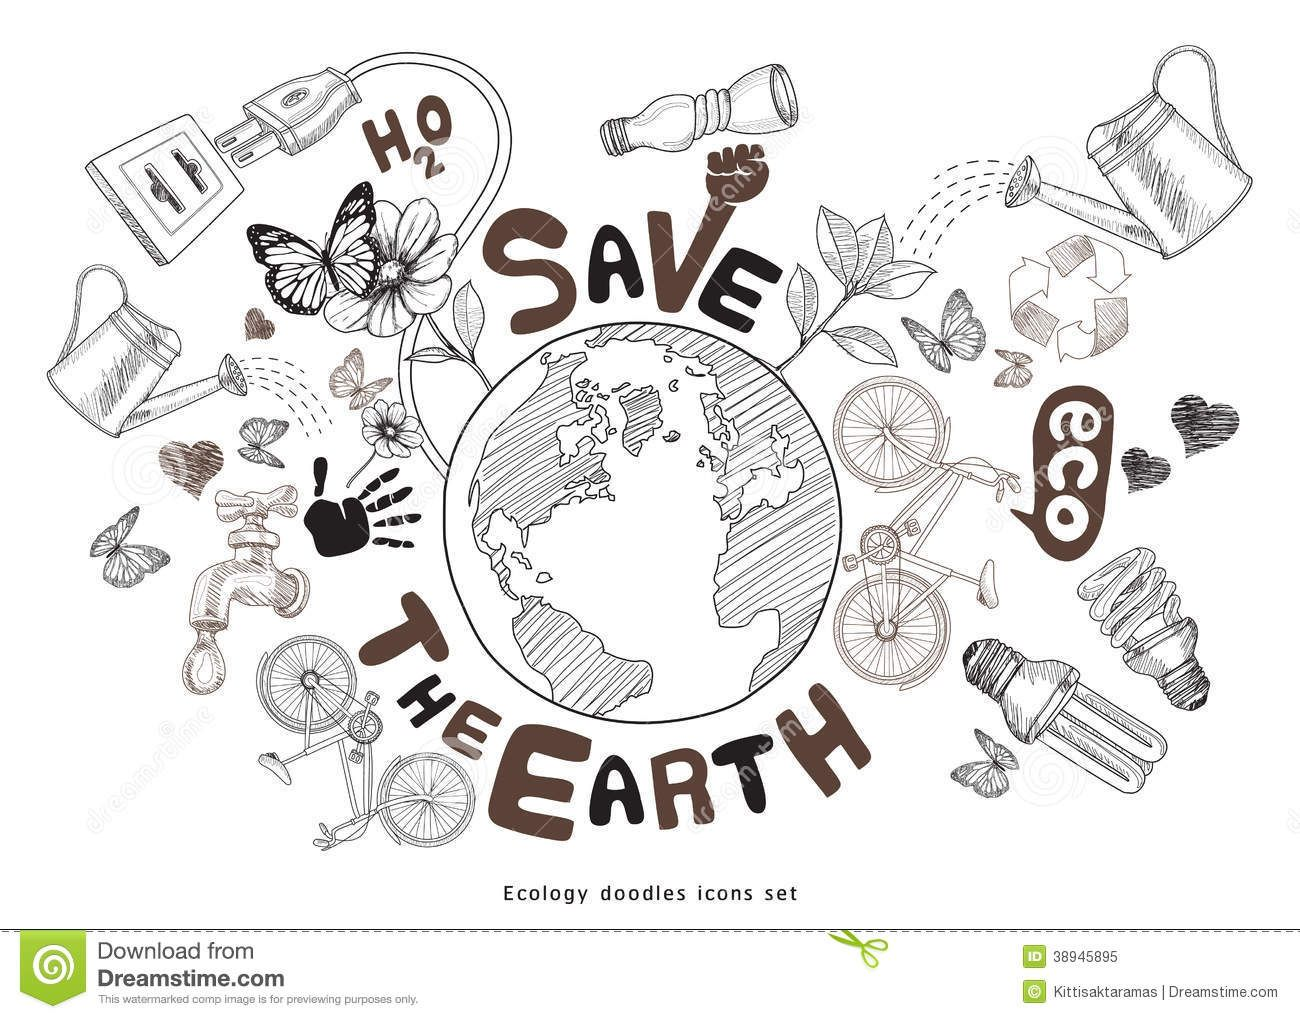 Science vector images over 84 600 vectorstock page 446 - Eco Friendly Earth Doodle Google Search